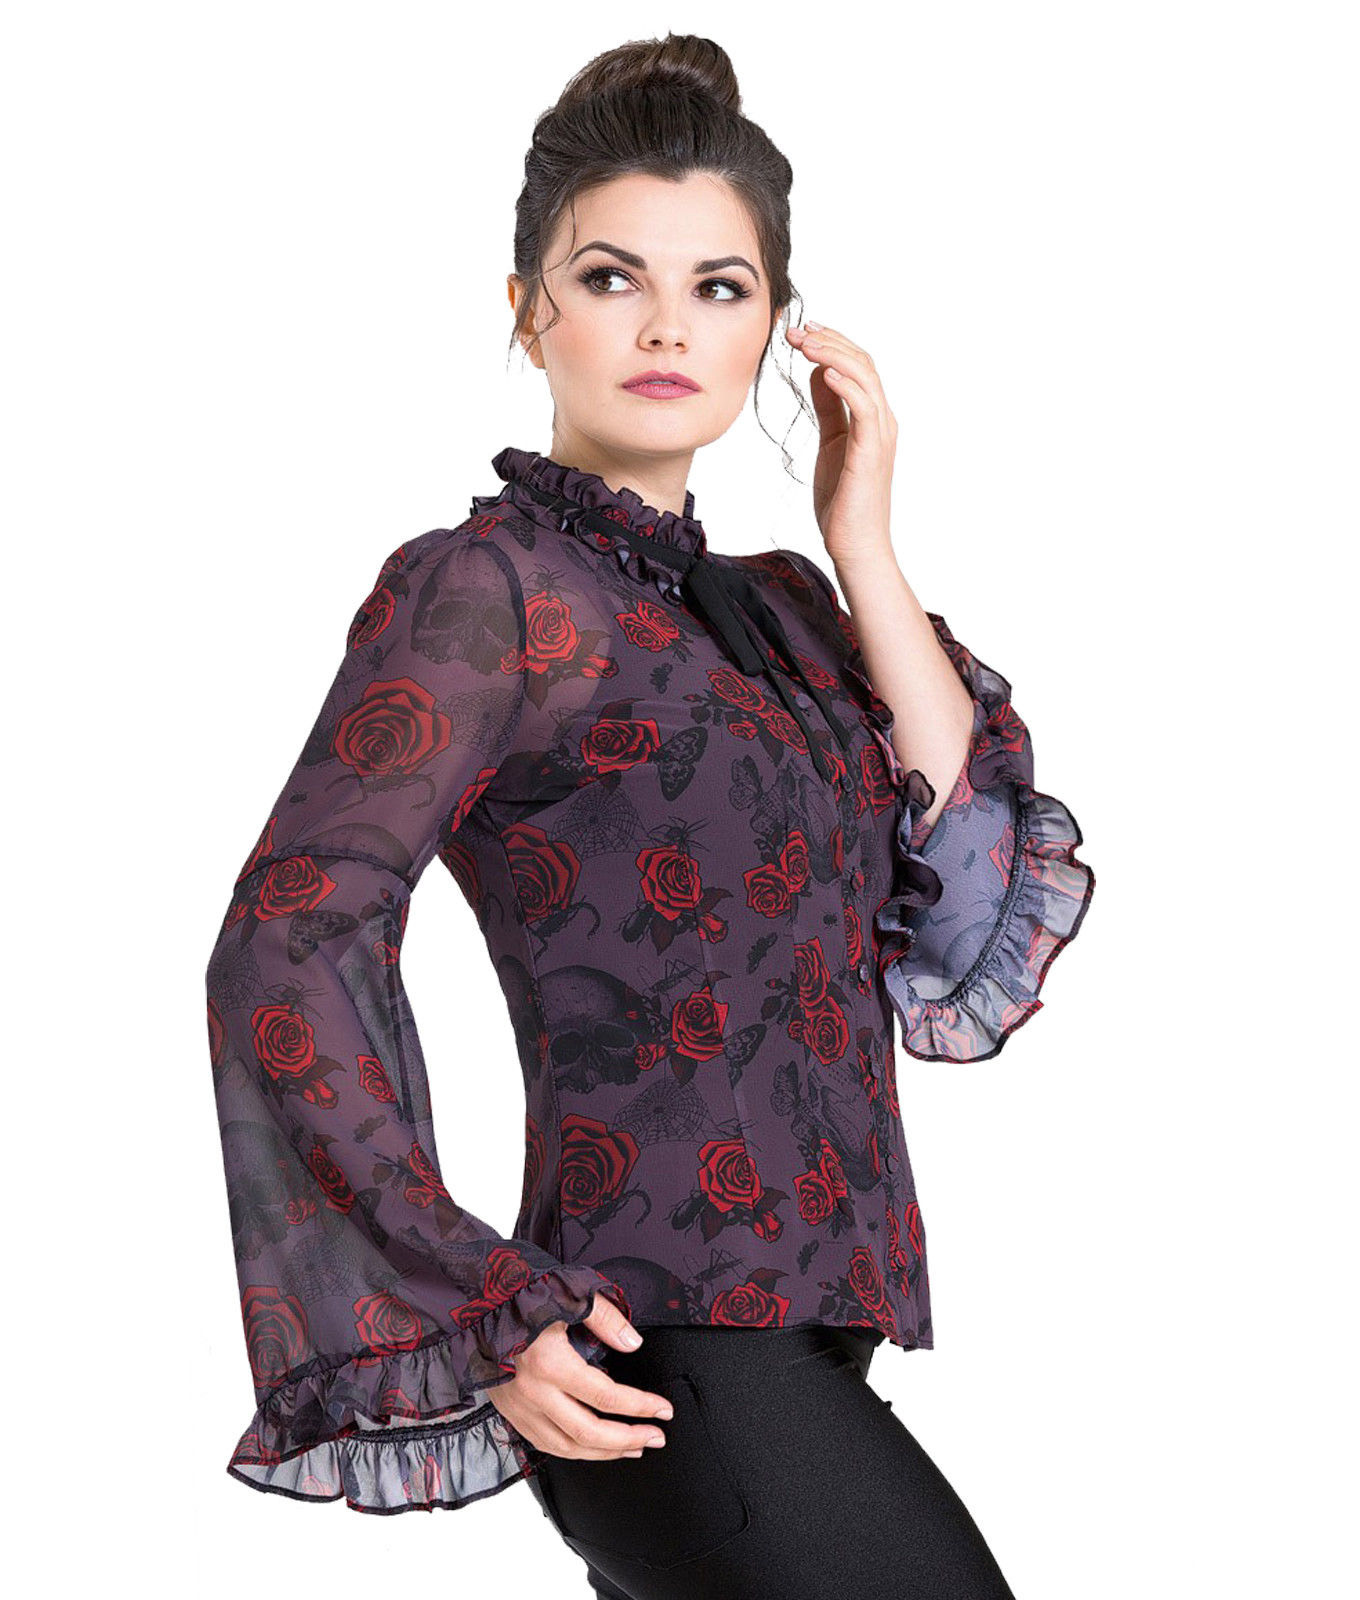 Hell-Bunny-Chiffon-Shirt-Top-Gothic-Floaty-BUGS-amp-ROSES-Purple-Blouse-All-Sizes thumbnail 17